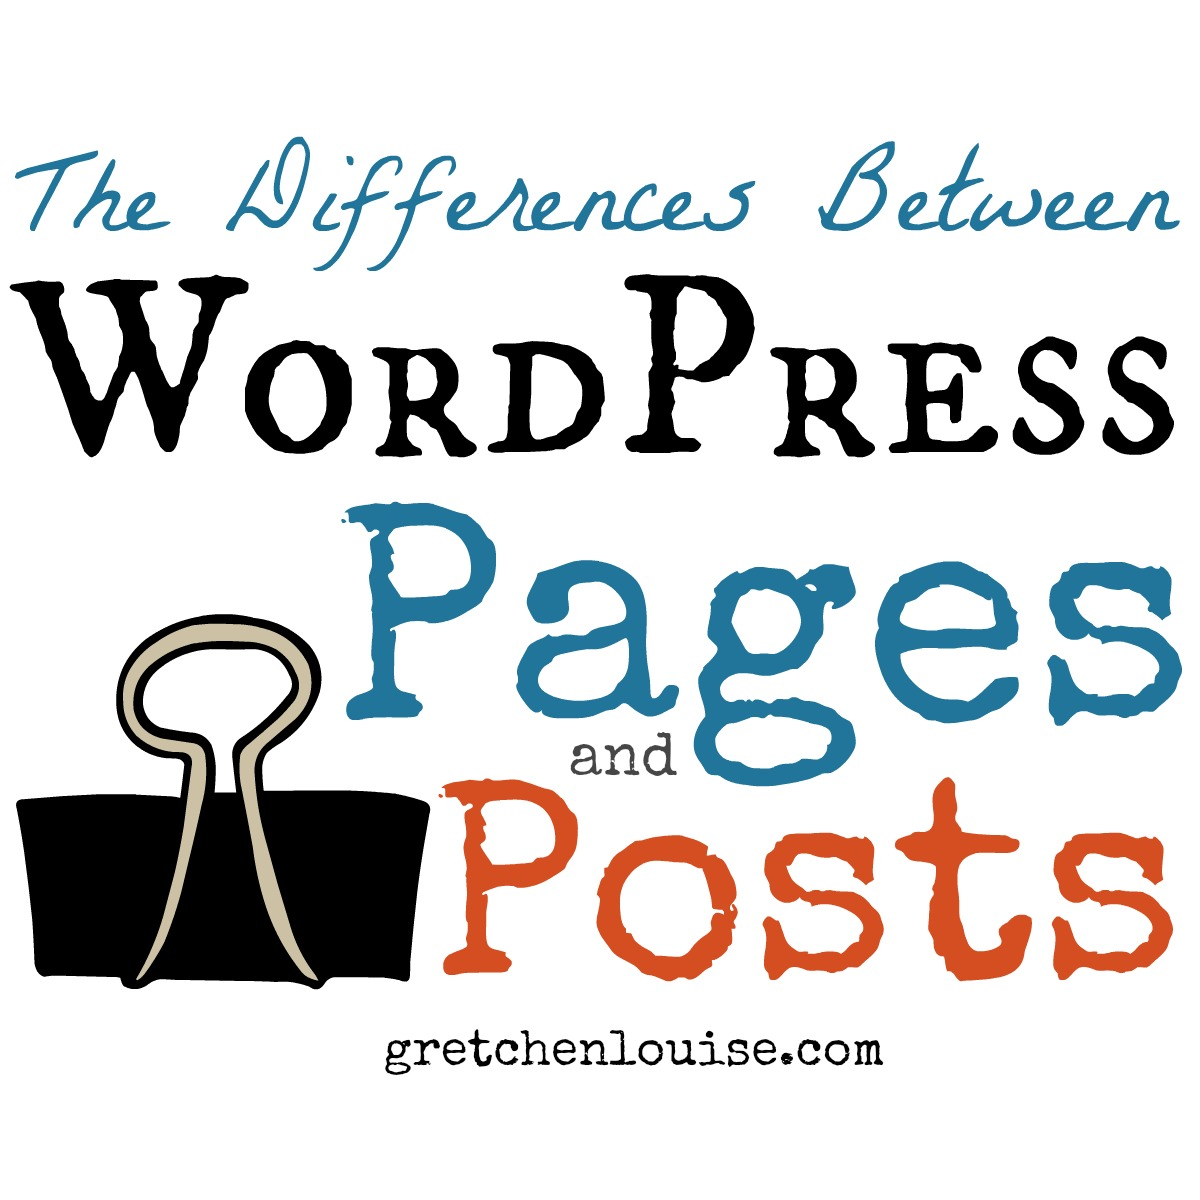 The Differences Between WordPress Pages and Posts